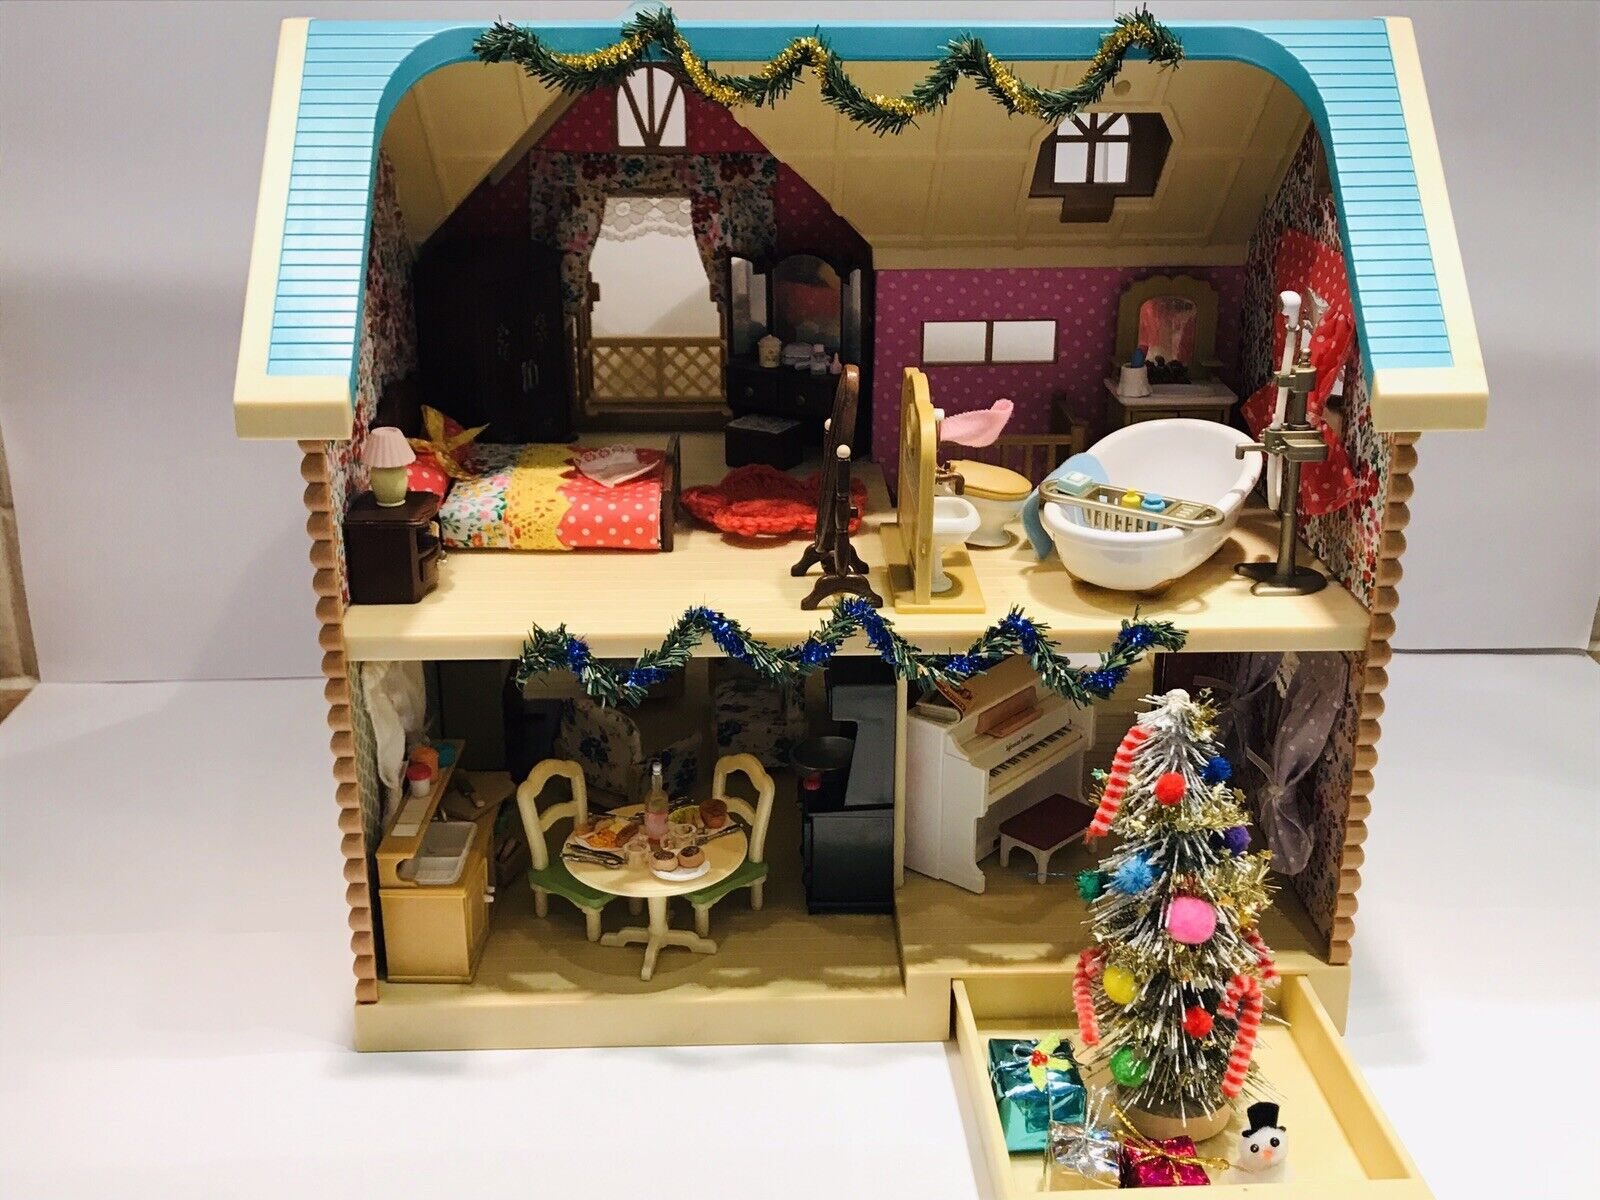 Beautiful sylvanian families larchwood lodge With Furniture And Cat Family